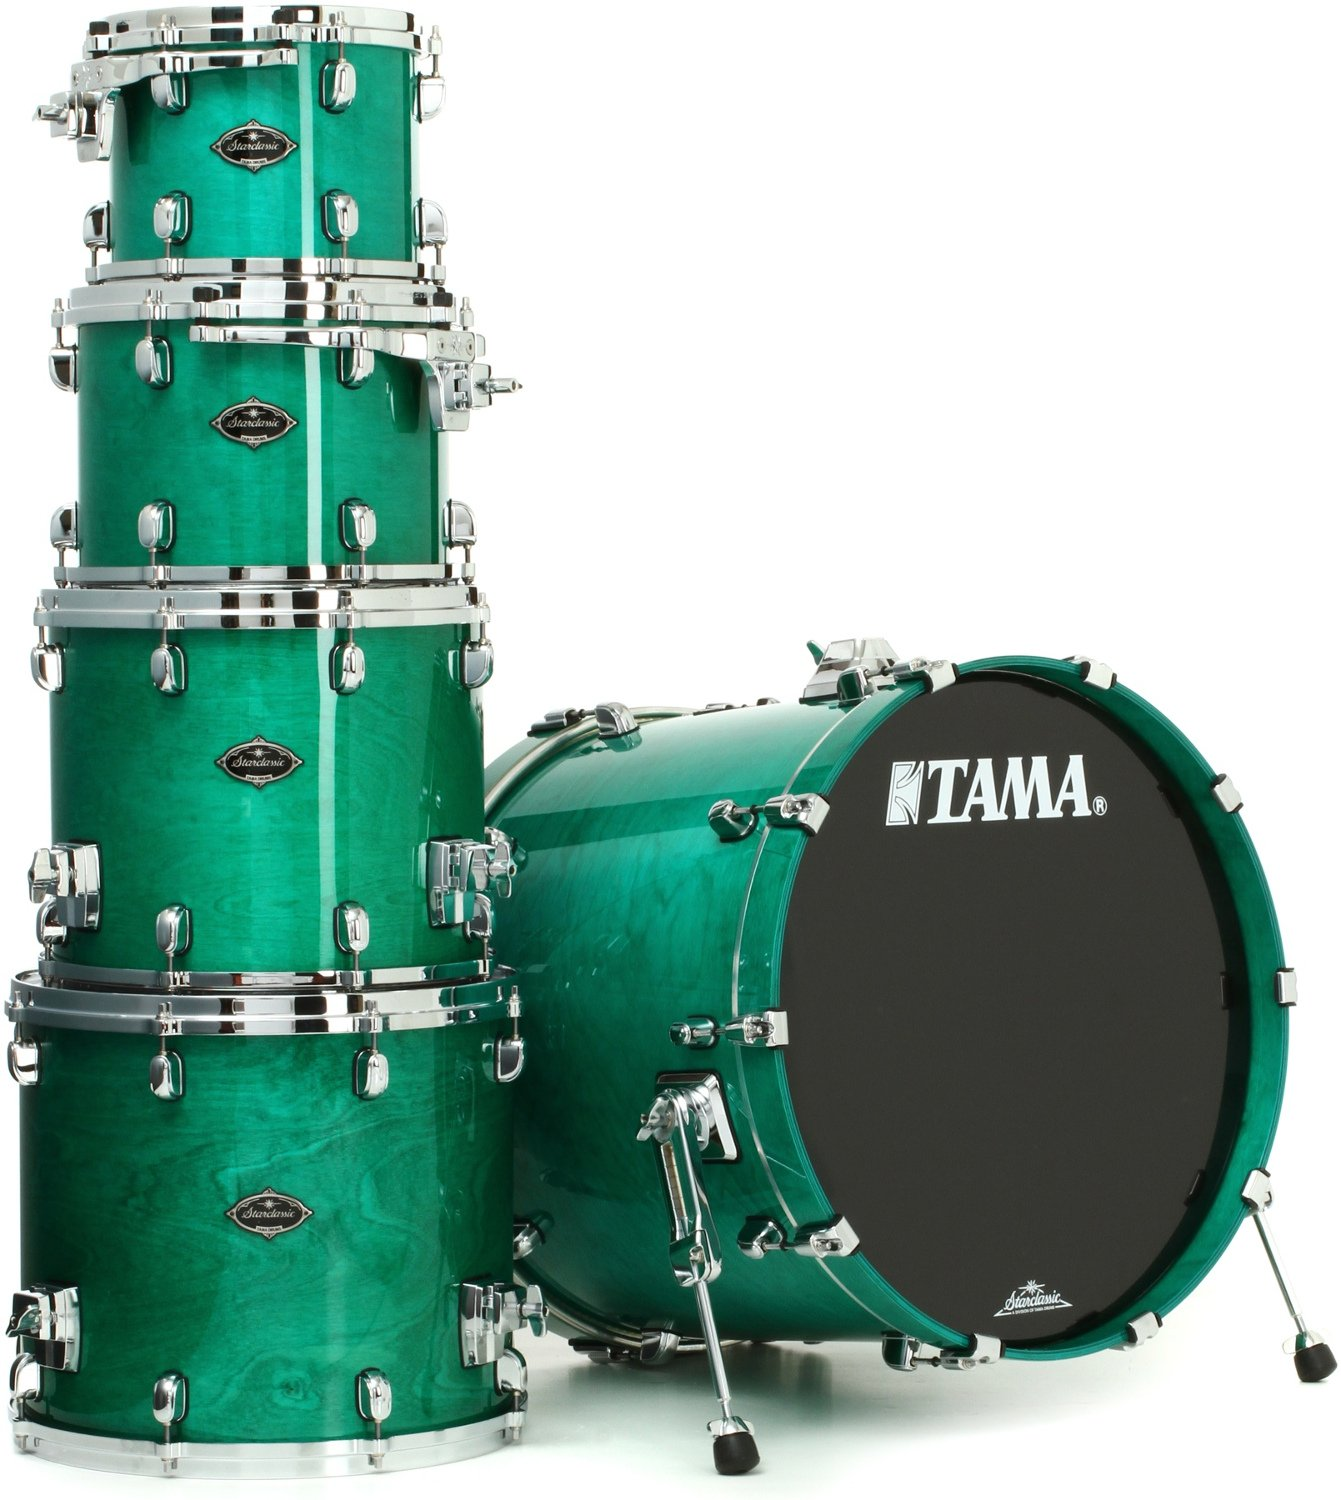 Tama TW52ZSMGN 5-Piece STAR Drum Walnut Shell Pack in Mint Green Mist Finish TW52ZSMGN